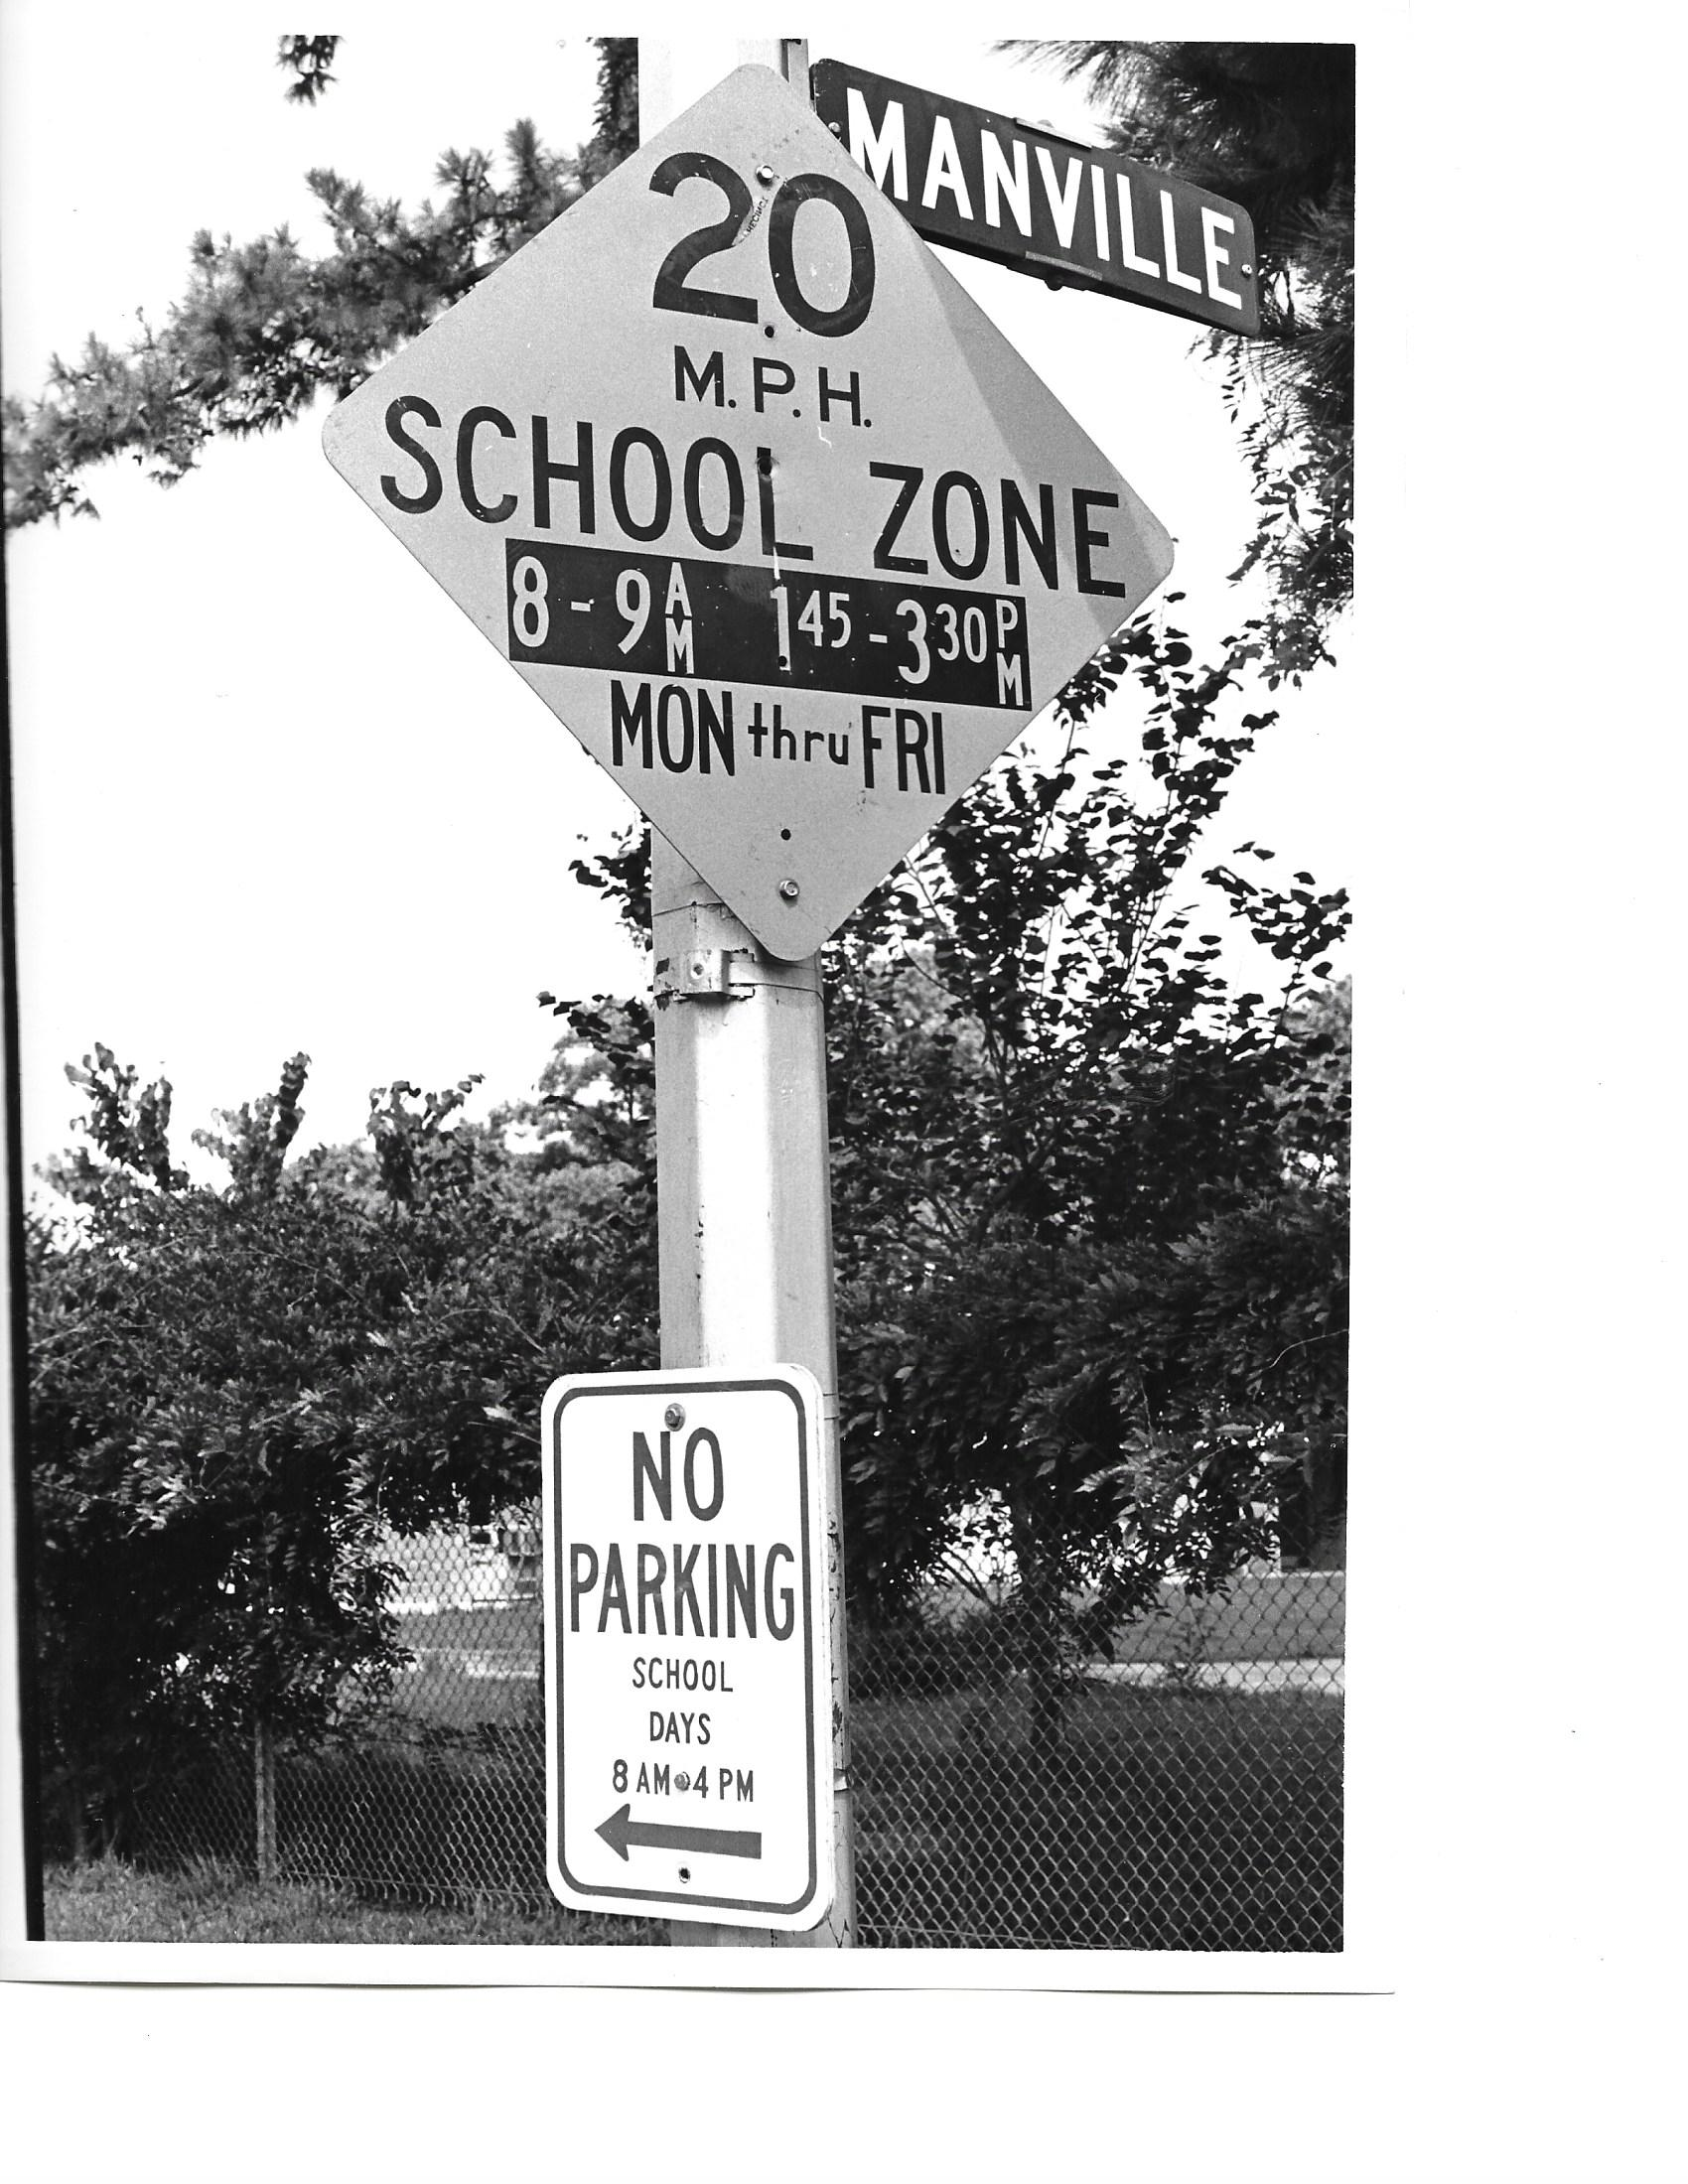 Back to School - September, 1967: New school zone signs are installed at Manville and Grovewood, next to Sinclair Elementary. City Council approved the signs to ensure students' safety for the new school year.